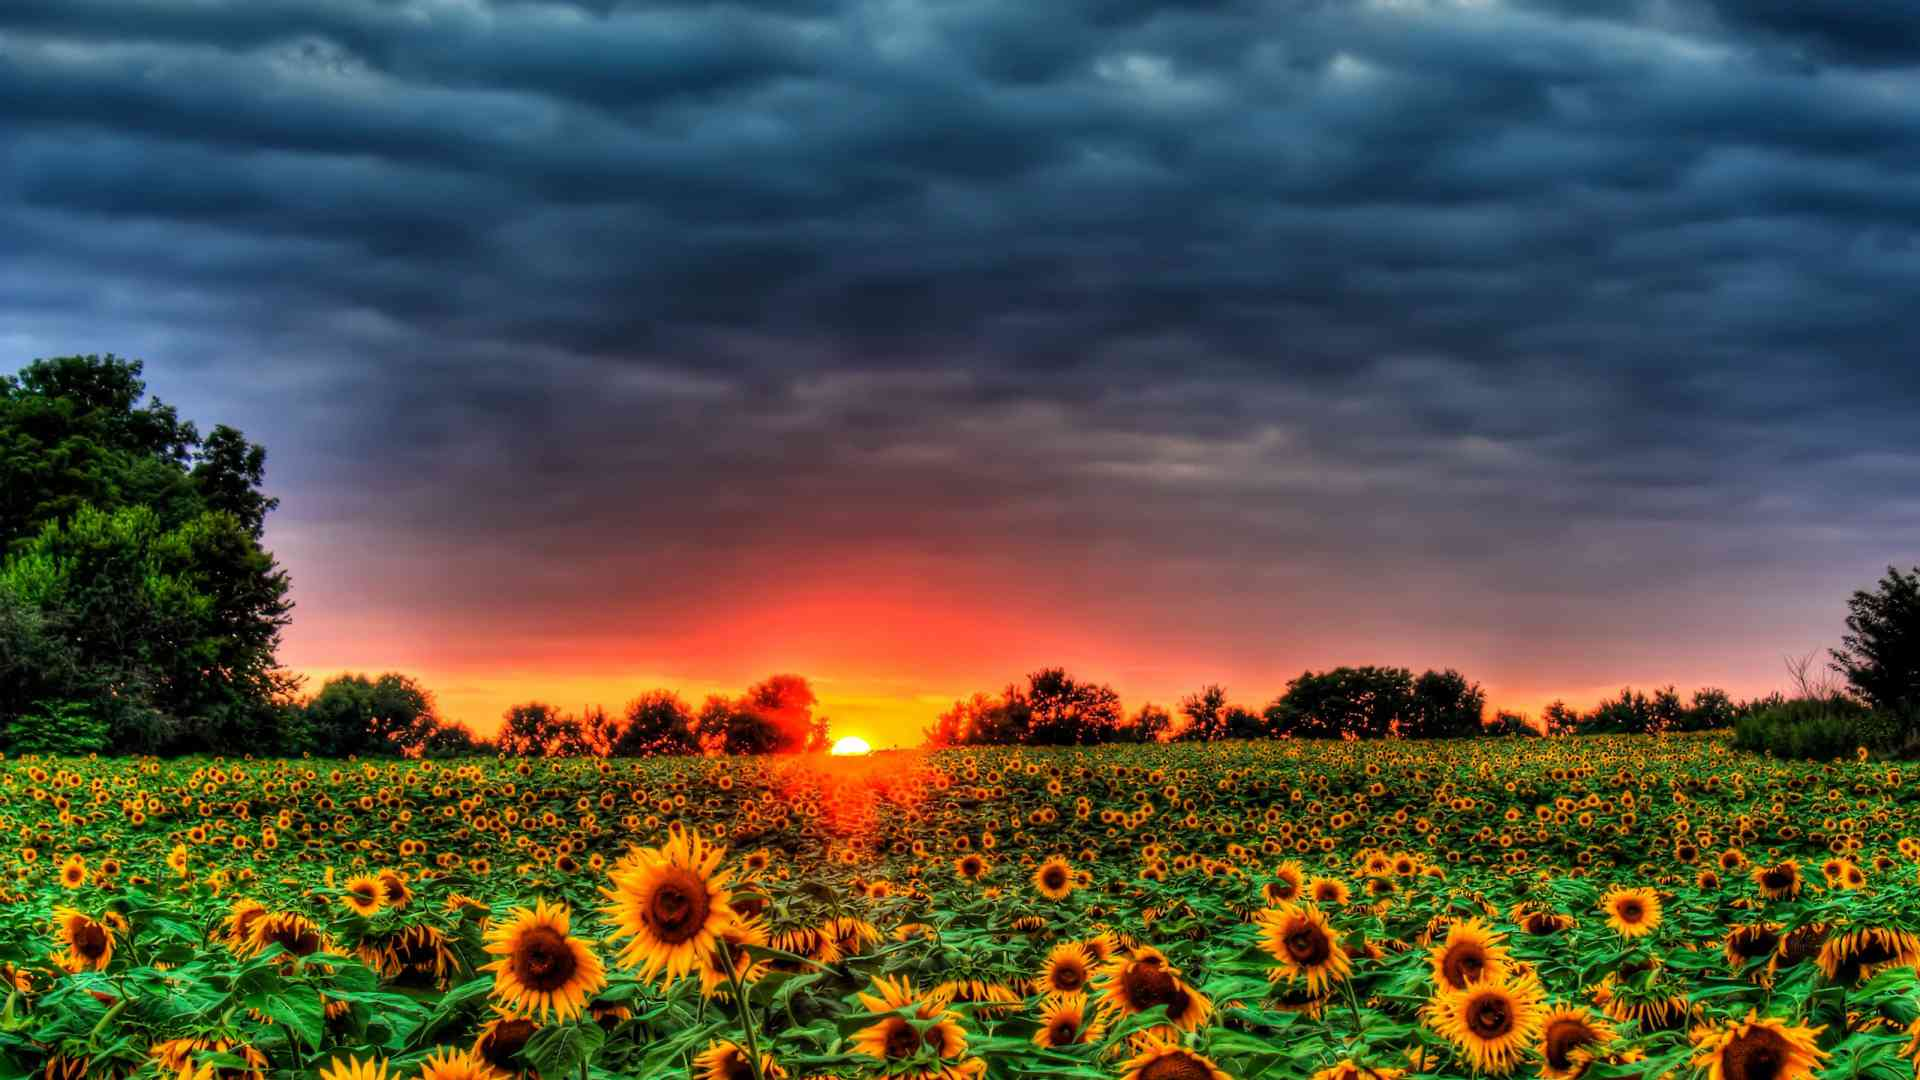 Field of Sunflowers by DesktopNexus